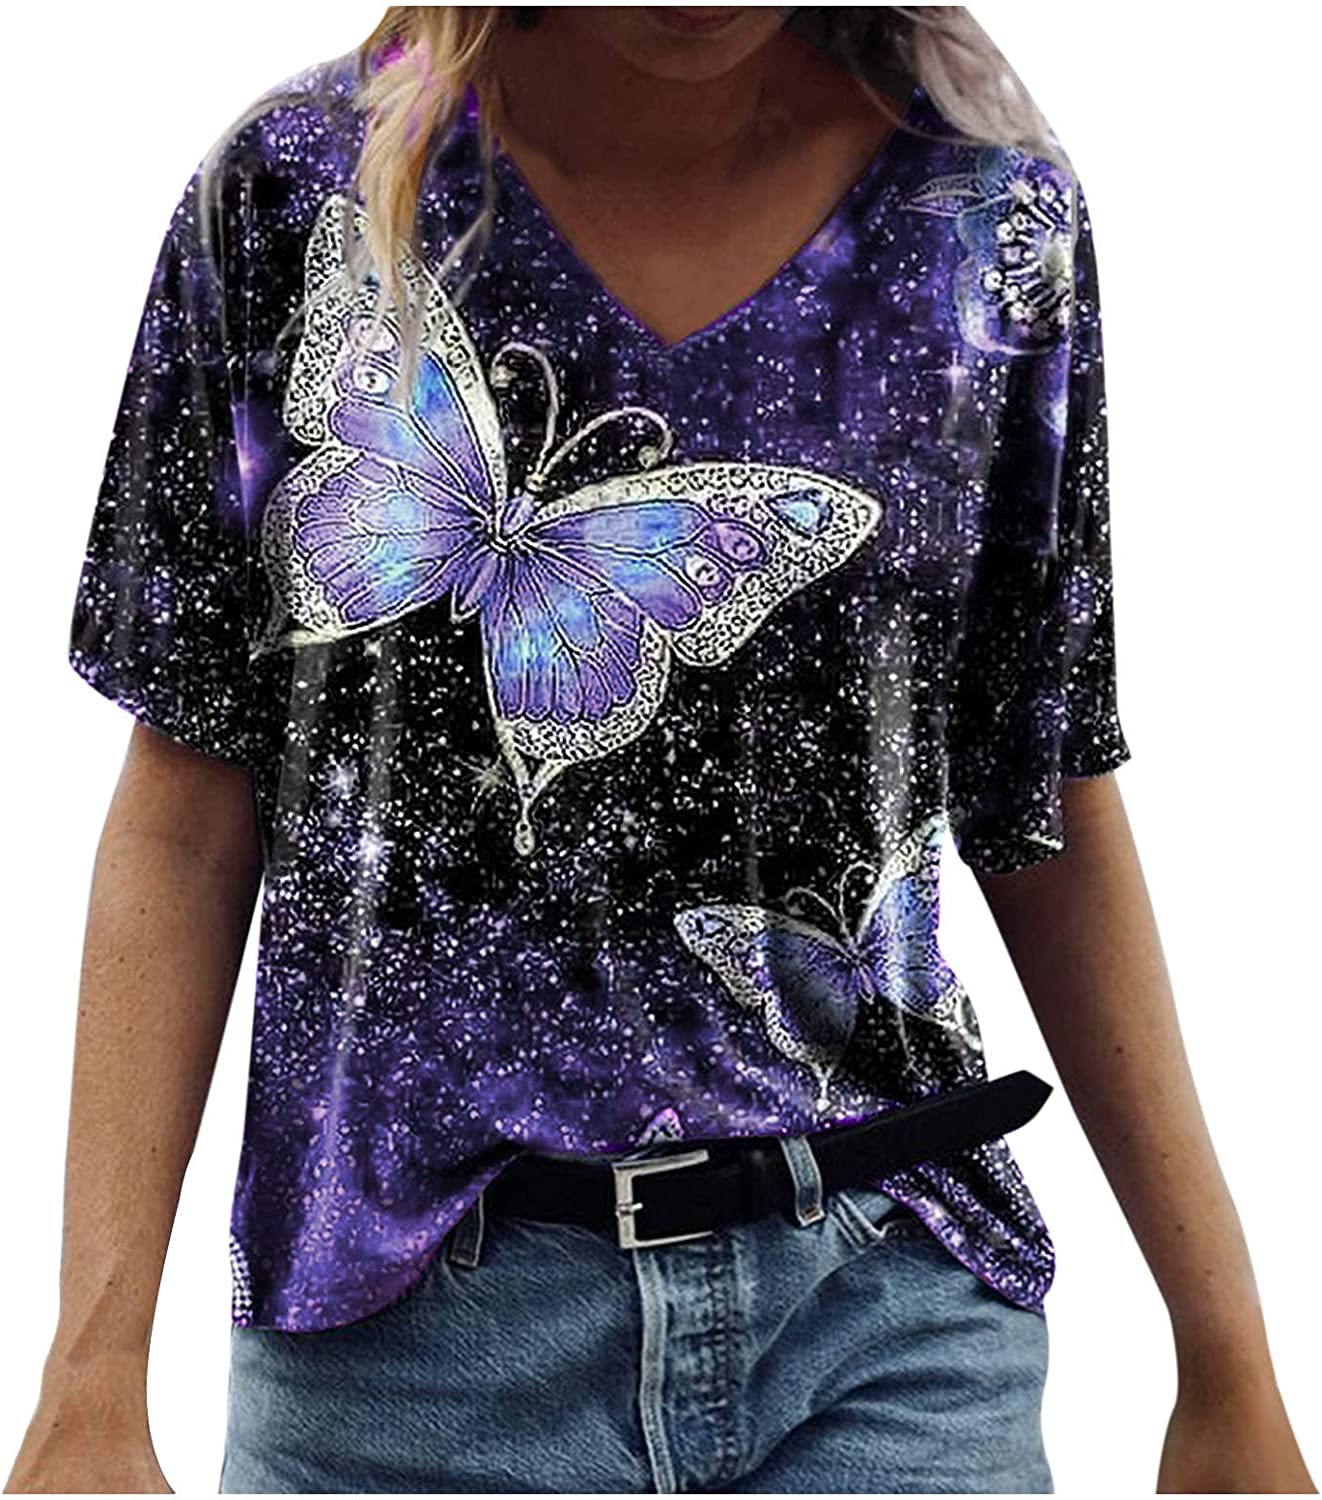 Forwelly Womens Loose Casual Summer Short Sleeve T Shirt V Neck Vintage Butterfly Print Blouse Tunit Tops